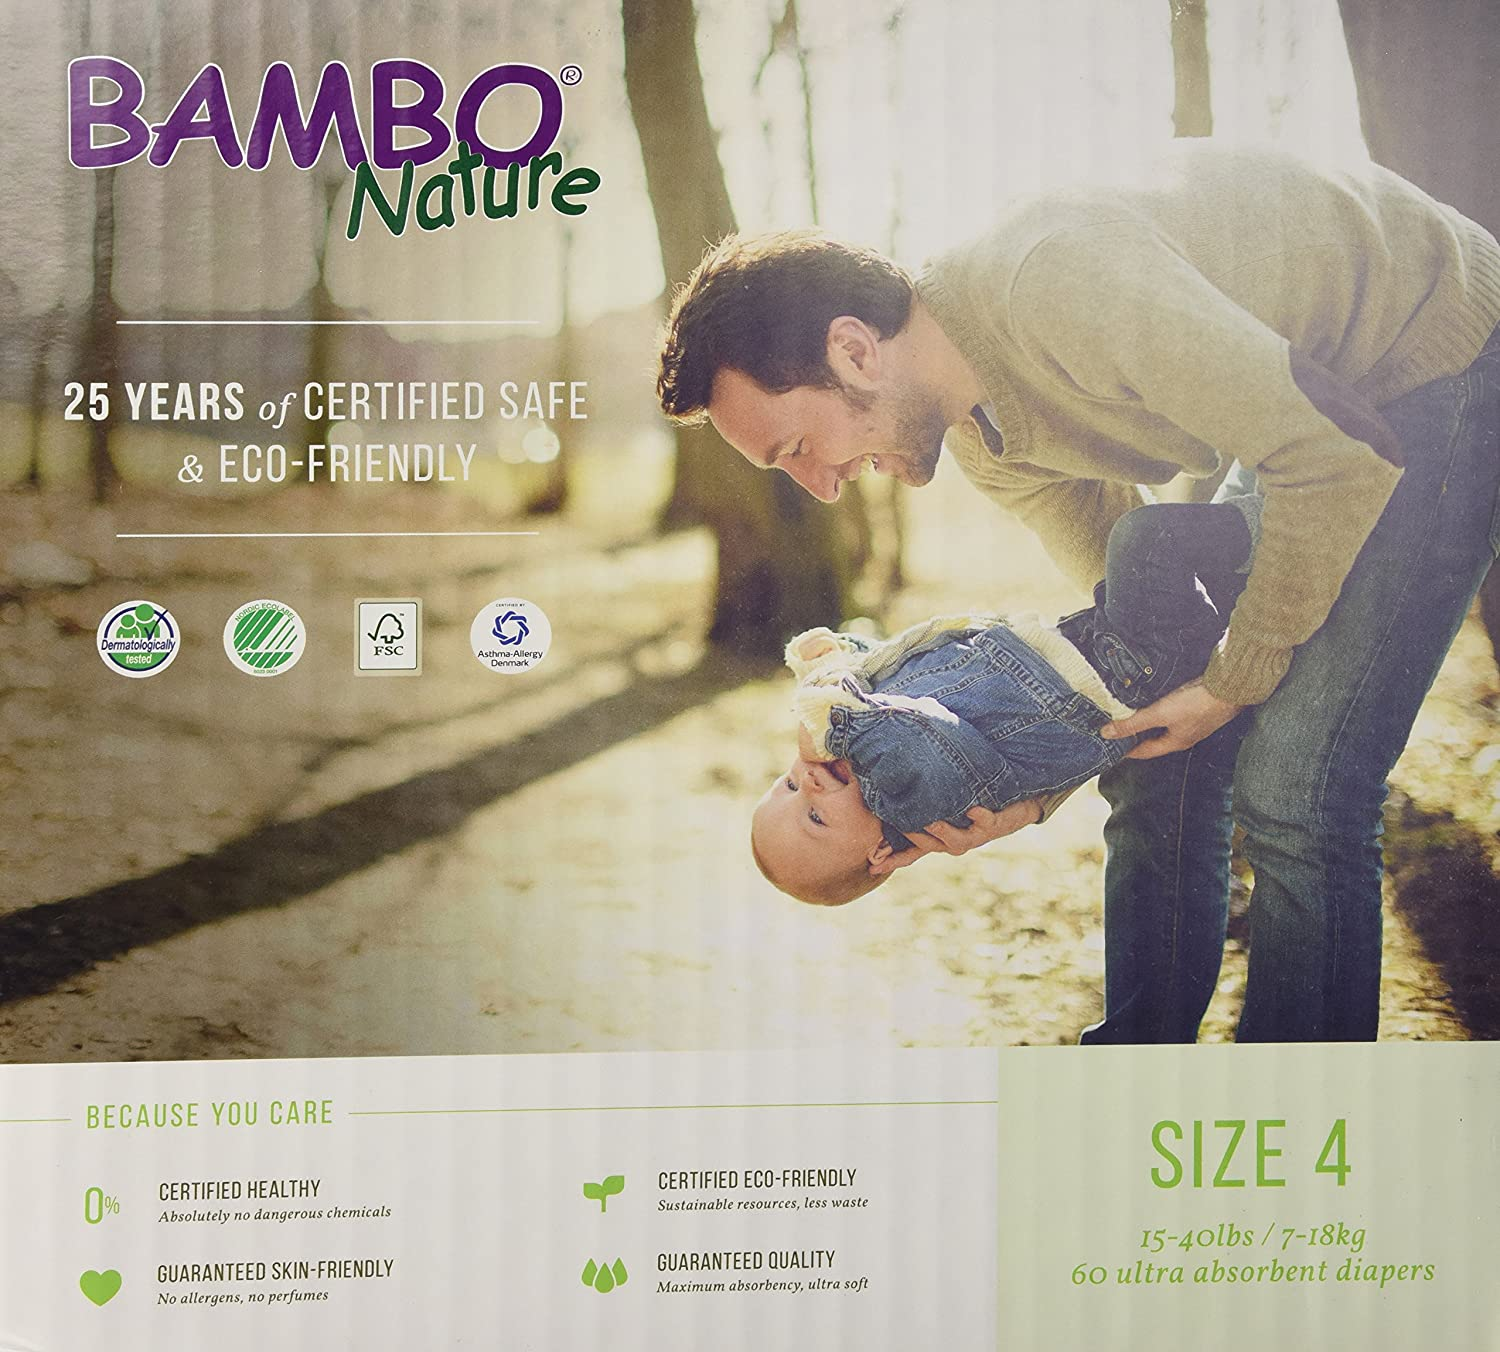 Bambo Nature Premium Baby Diapers, Maxi, Size 4, 60 Count by Bambo Nature   B00VSHUA22